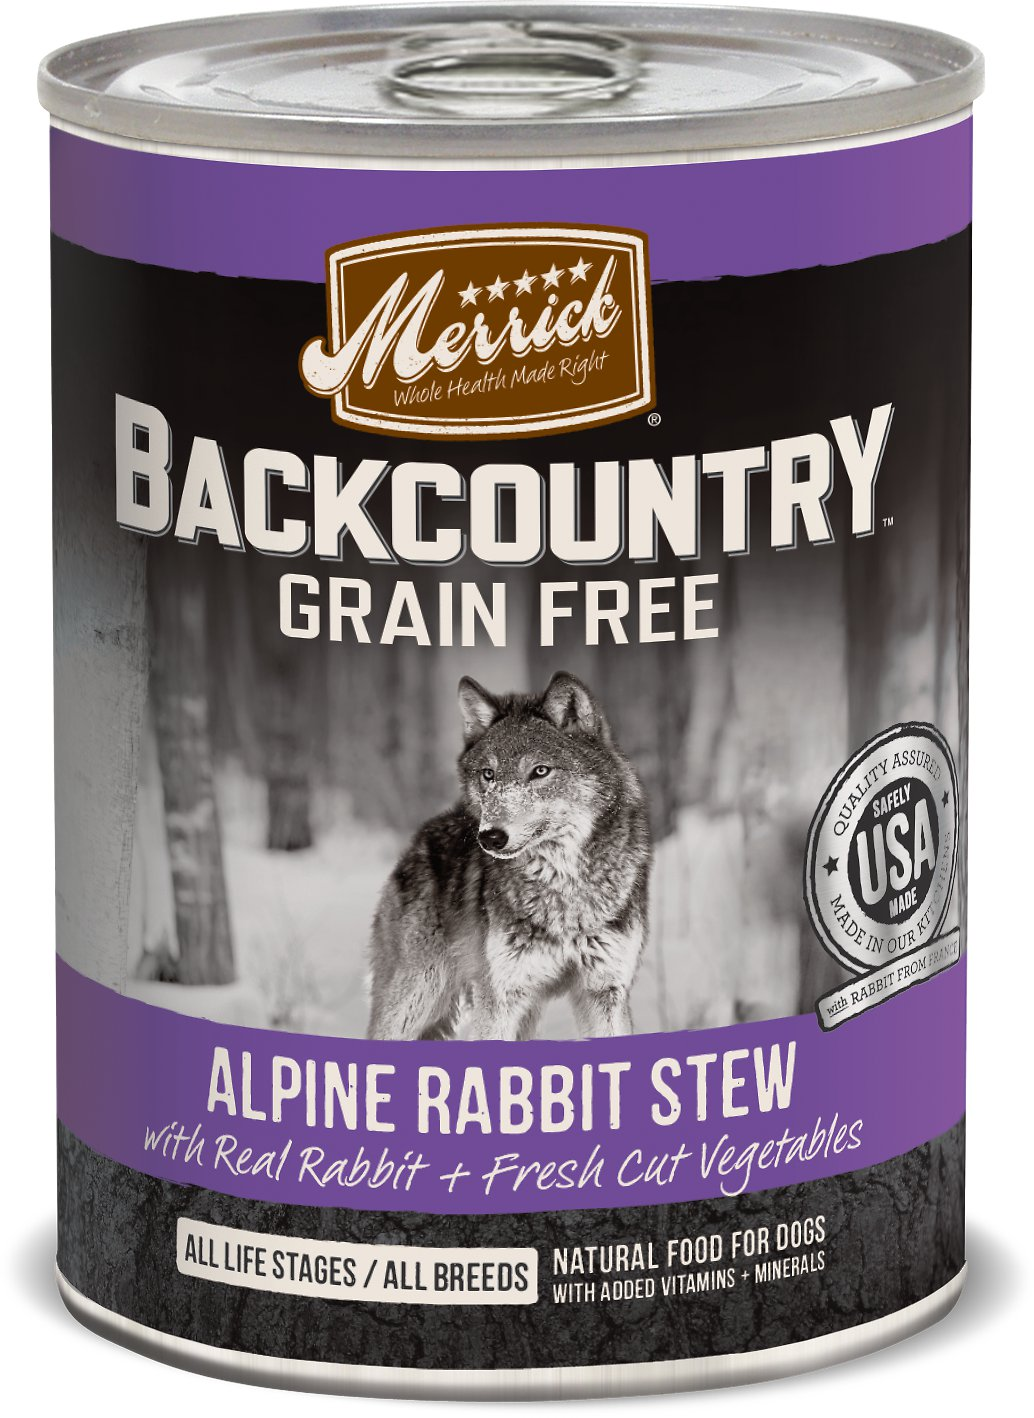 Merrick Backcountry Alpine Rabbit Stew Canned Dog Food 12.7z, 12